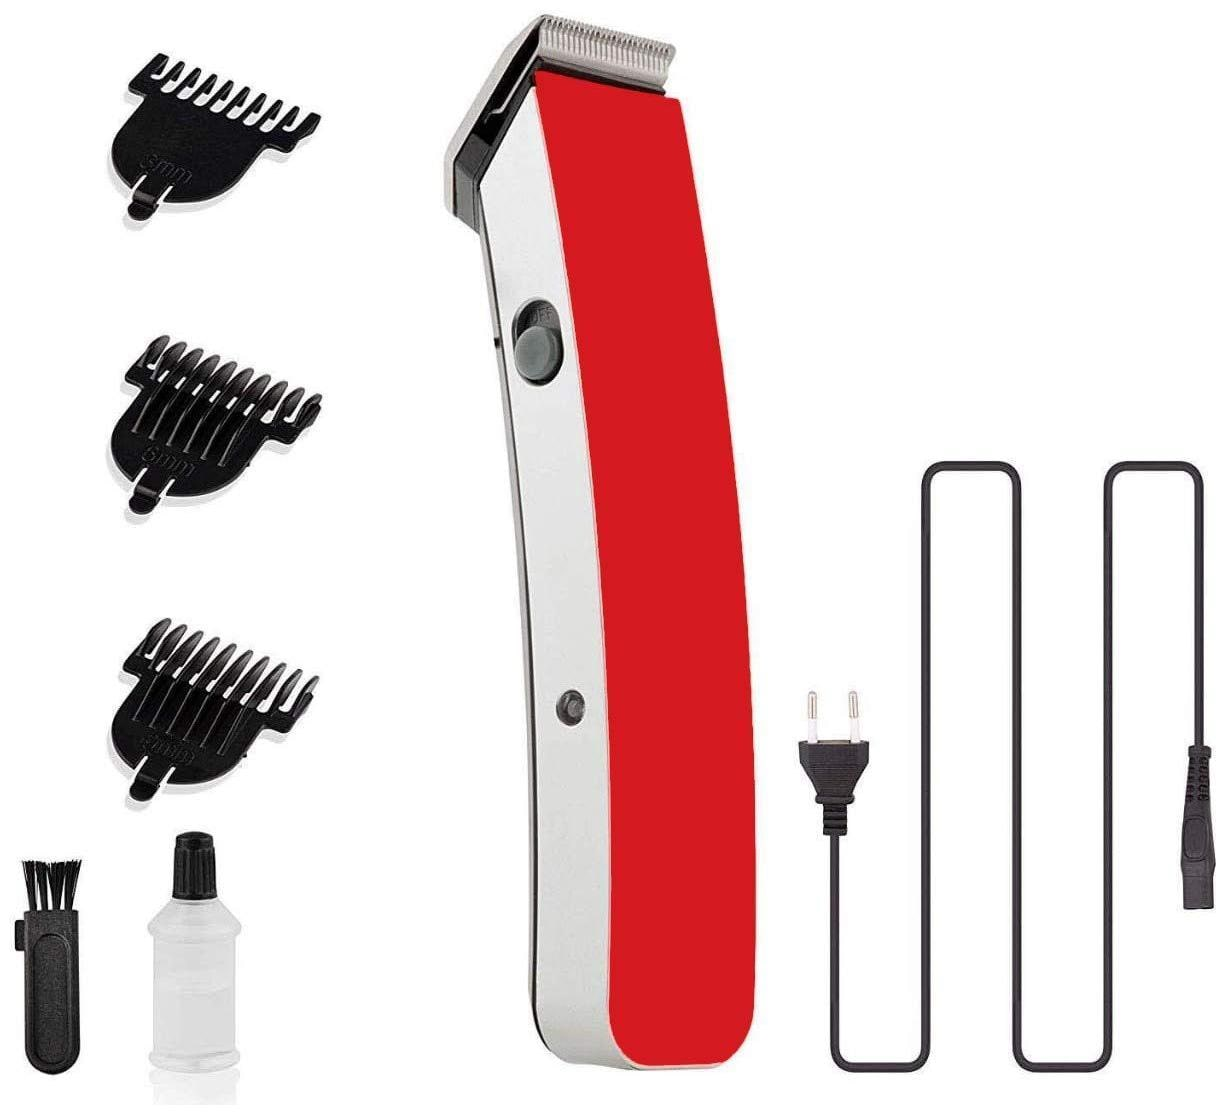 Meherma NS-216 Beard and Hair Trimmer for Men (Red)